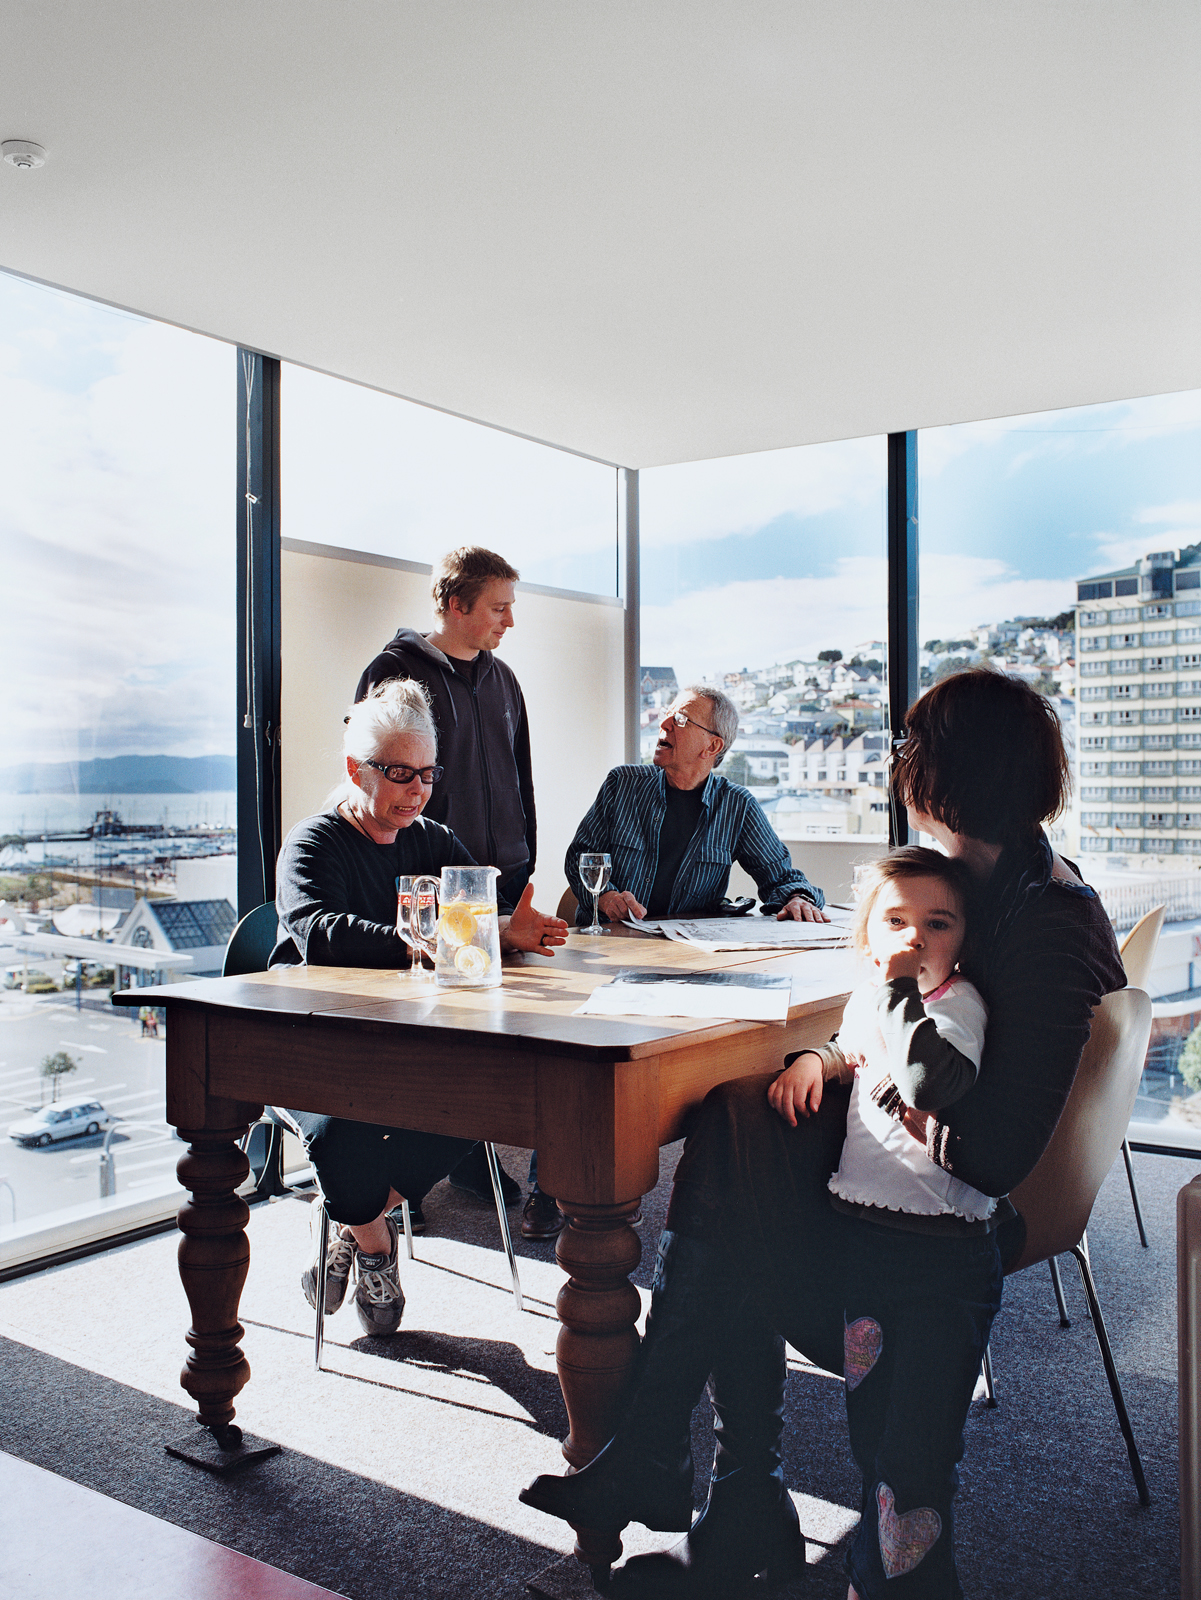 Jan Bieringa (seated, left) hangs out with her son, Kris Bieringa (standing), Tony Hiles, Judith Fyfe, and Fyfe's granddaughter, Phoebe Pottinger. Surrounded on three sides by glass walls, the dining room is the perfect spot to soak up the stunning views